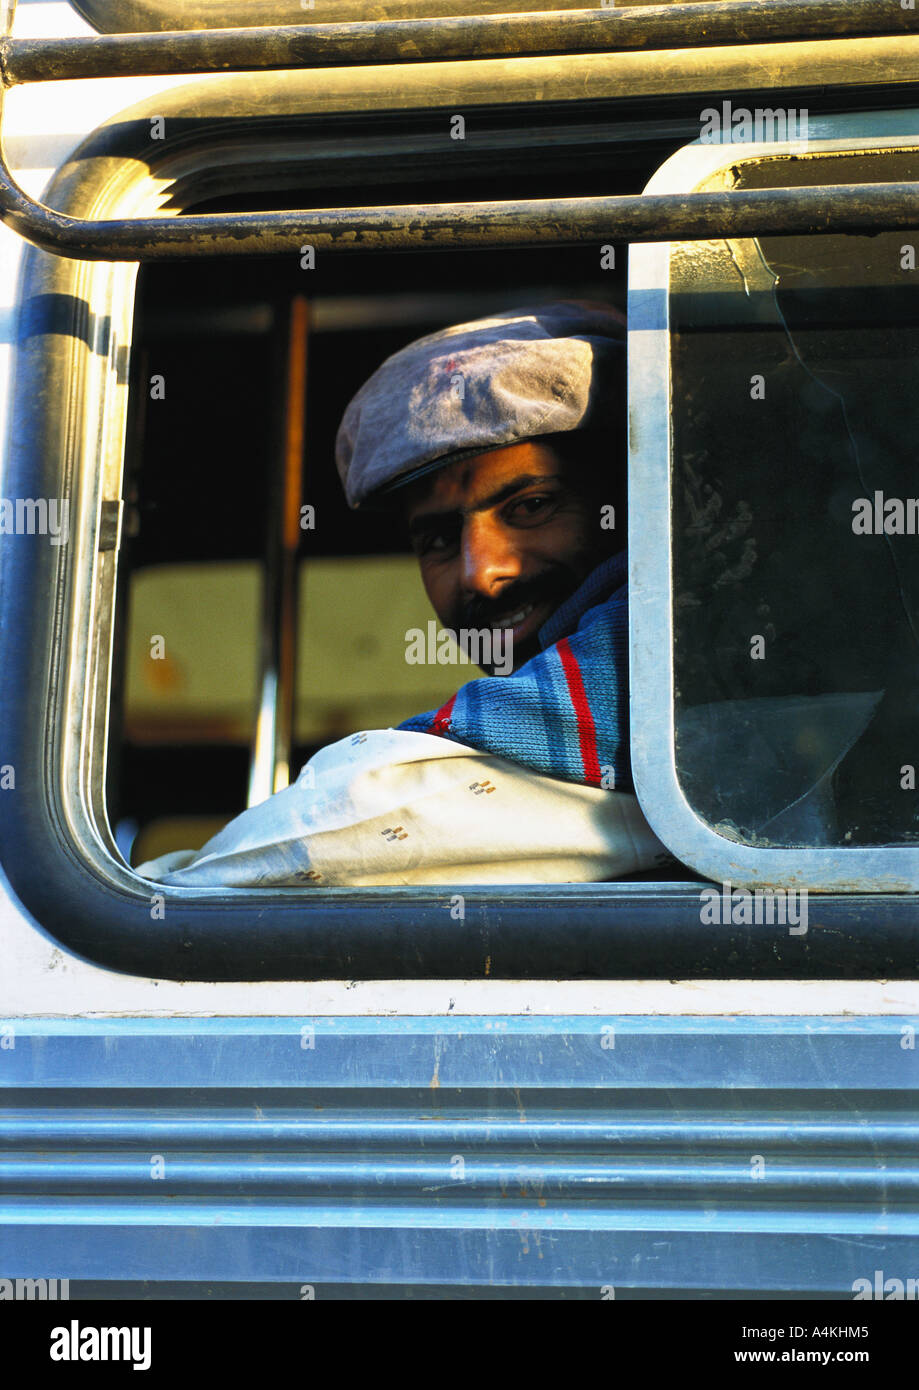 India, man looking out of bus window - Stock Image